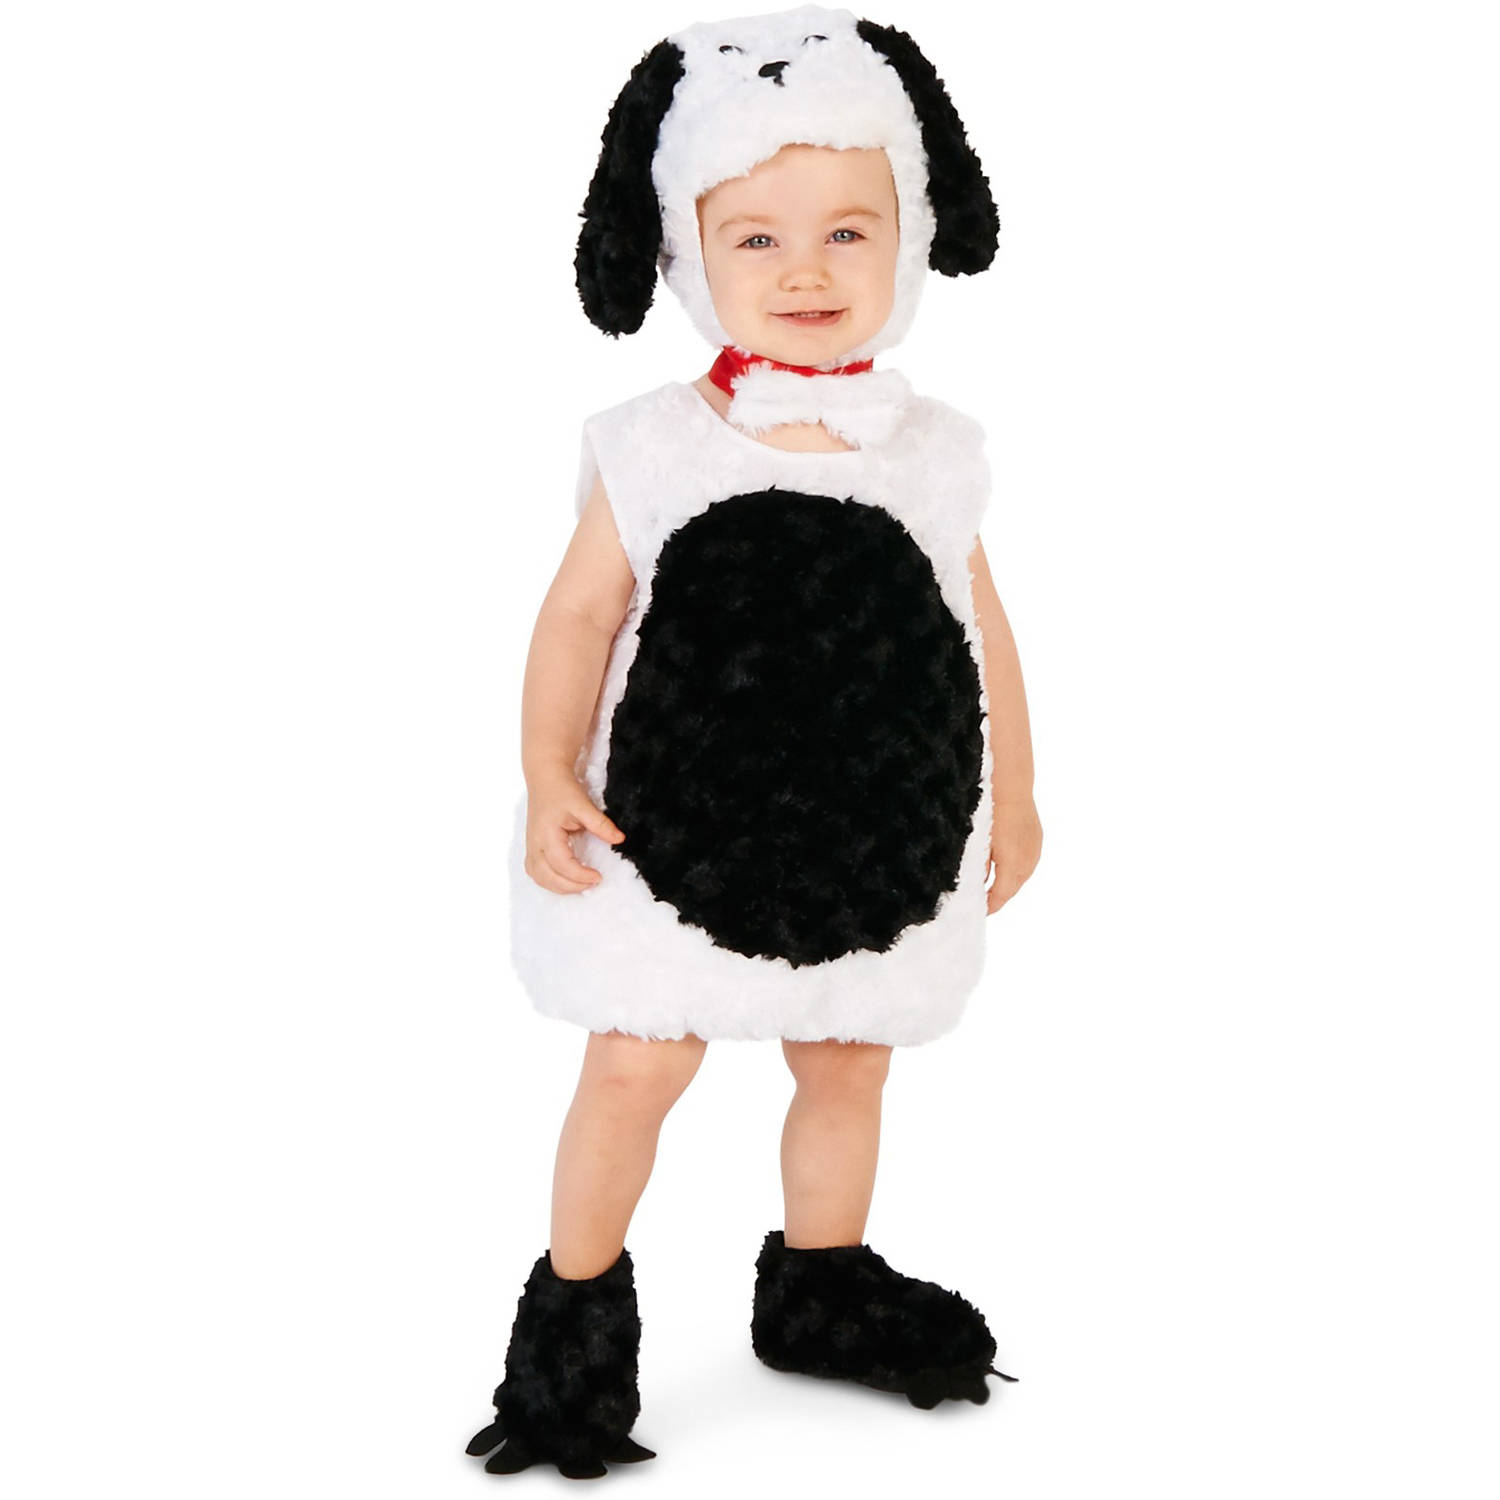 Gentle Puppy Toddler Halloween Costume Size 3T-4T  sc 1 st  Walmart & Gentle Puppy Toddler Halloween Costume Size 3T-4T - Walmart.com